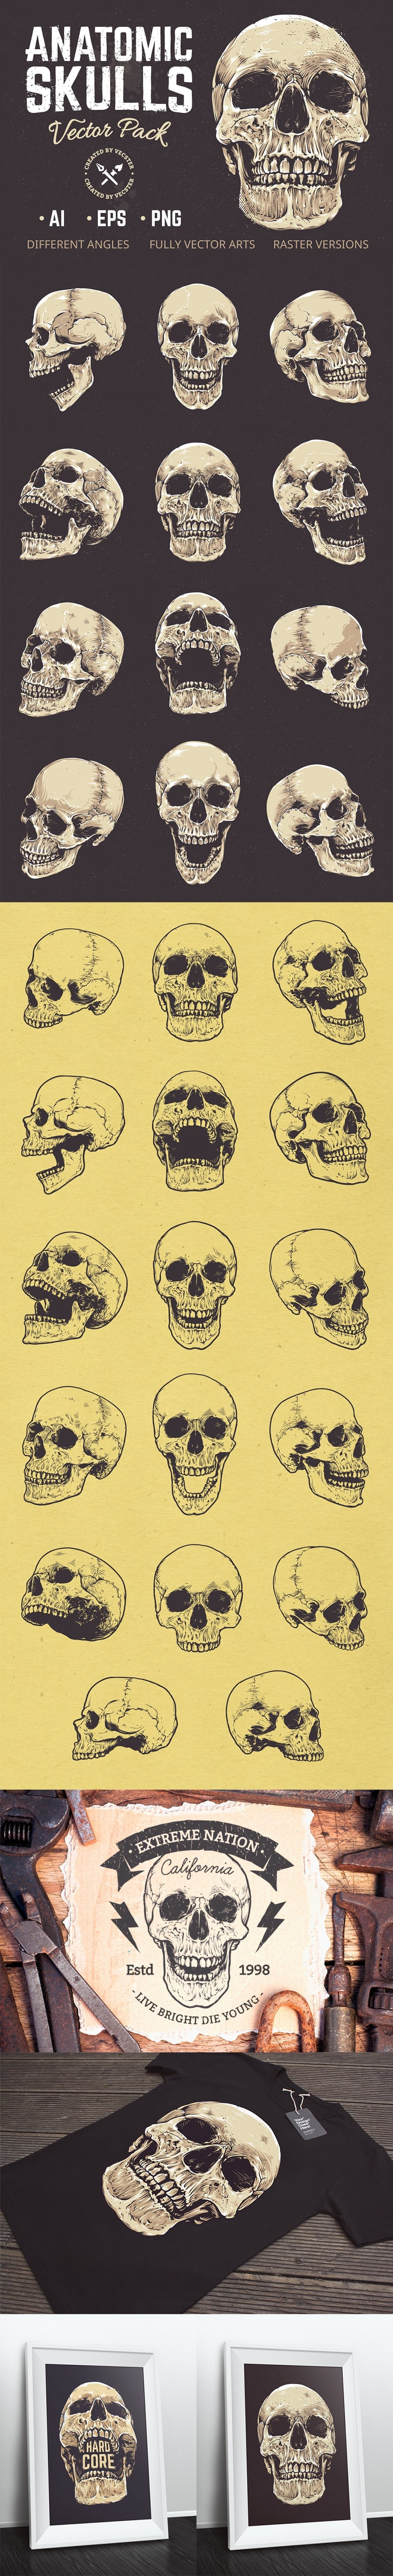 Anatomic Skulls | Vector Pack - only $10 - Preview 4 full